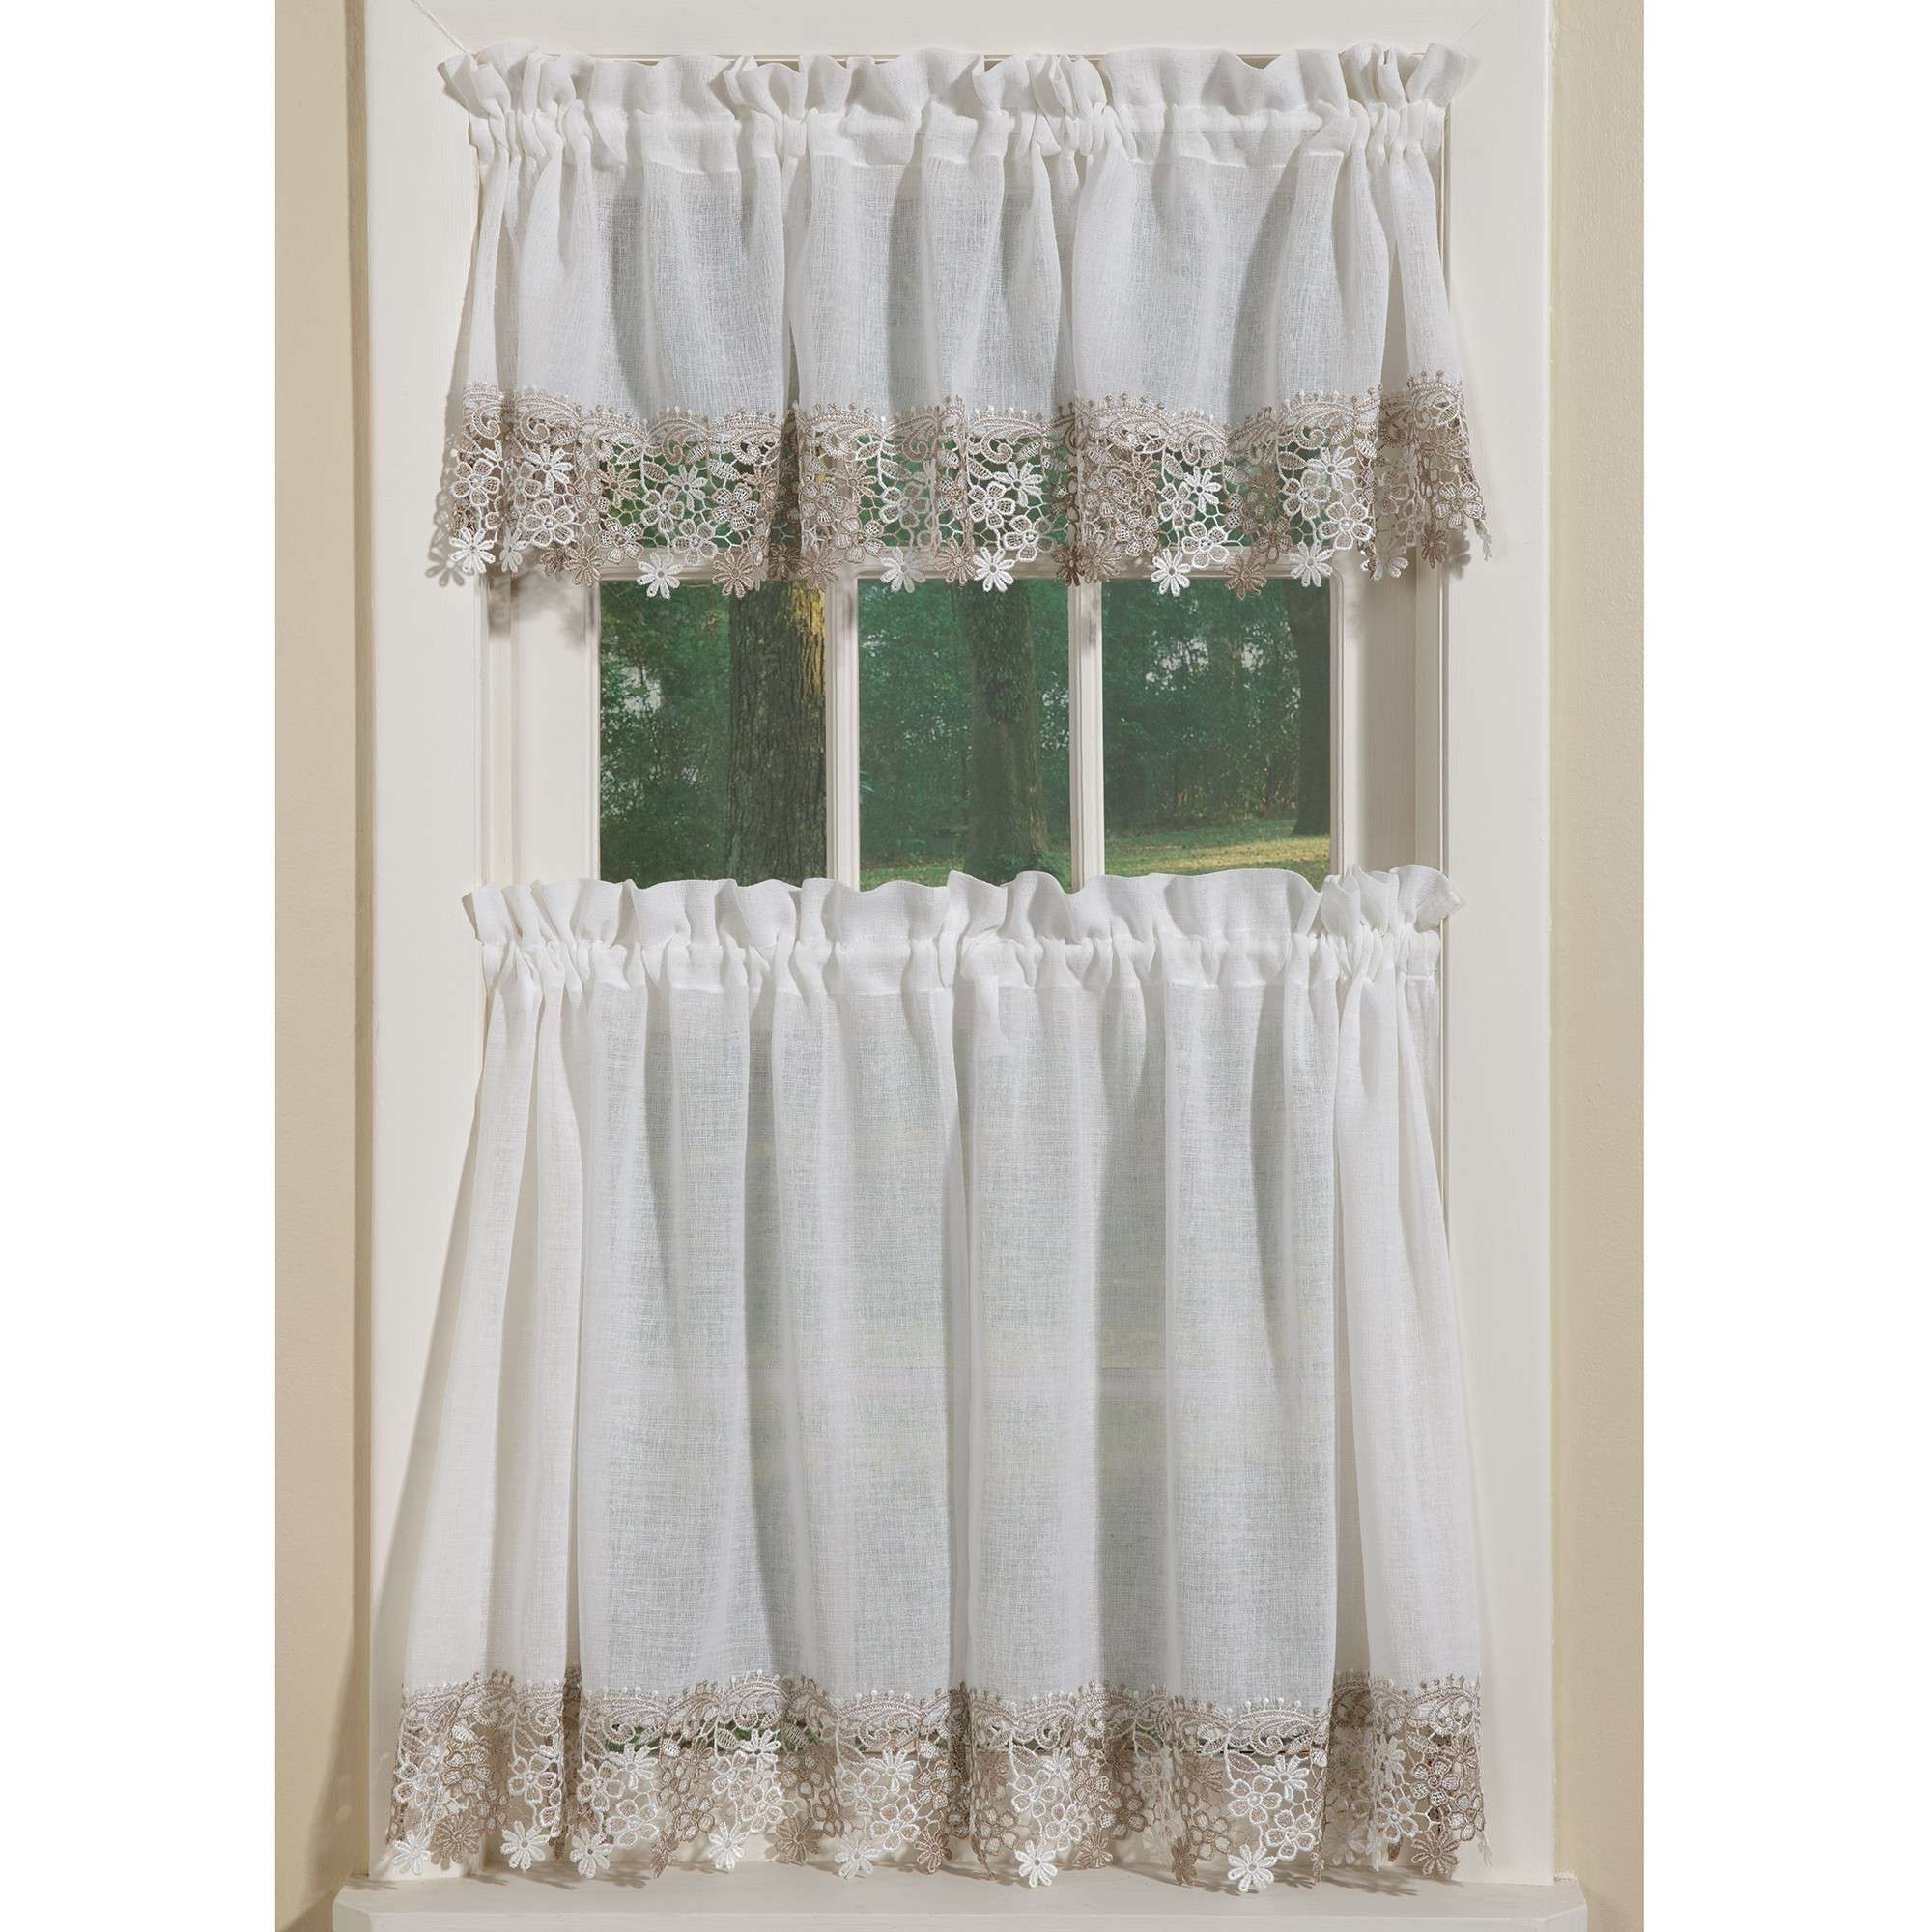 Most Recent Remarkable Lace Curtain Valances And Tiers Kitchen Curtains Pertaining To Sheer Lace Elongated Kitchen Curtain Tier Pairs (Gallery 17 of 20)